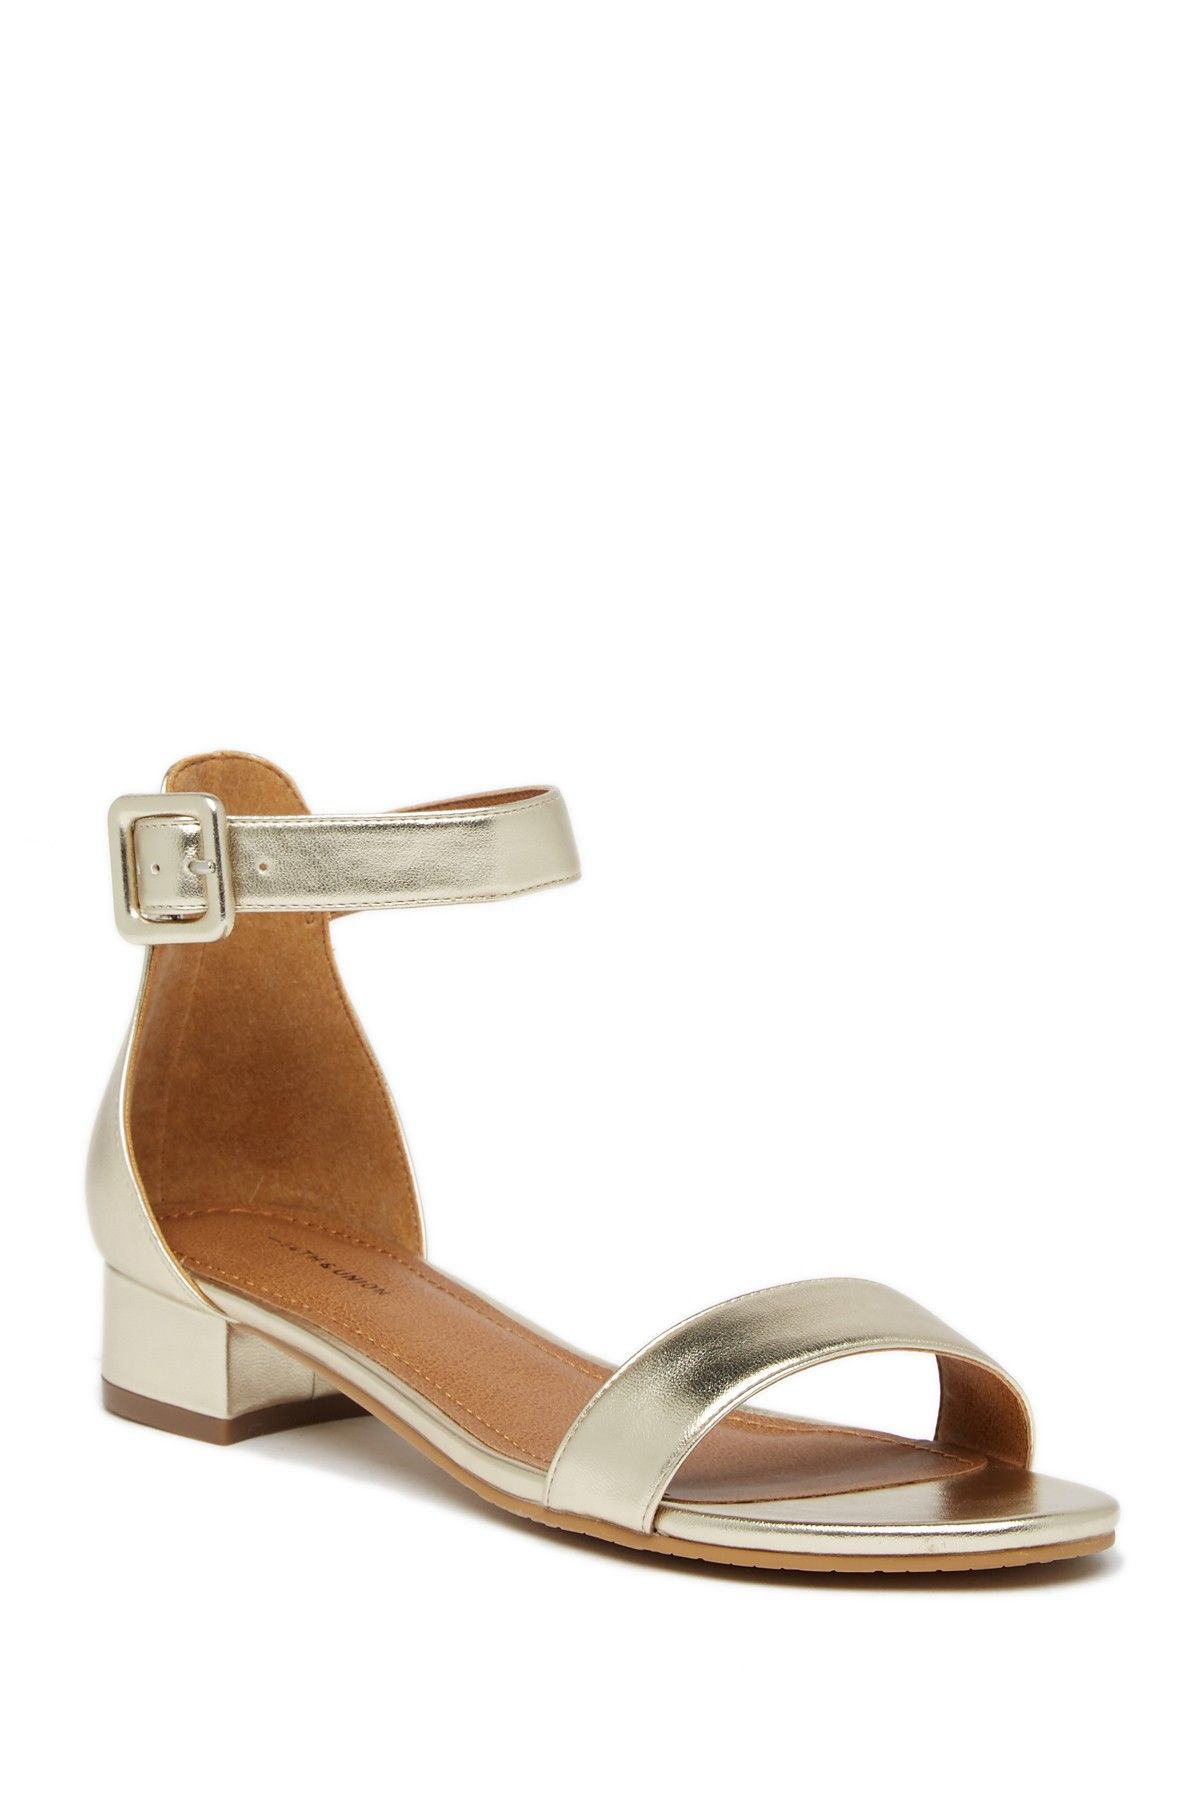 845fc06b184 14th   Union - Justine Ankle Strap Sandal - Wide Width Available. Free  Shipping on orders over  100.